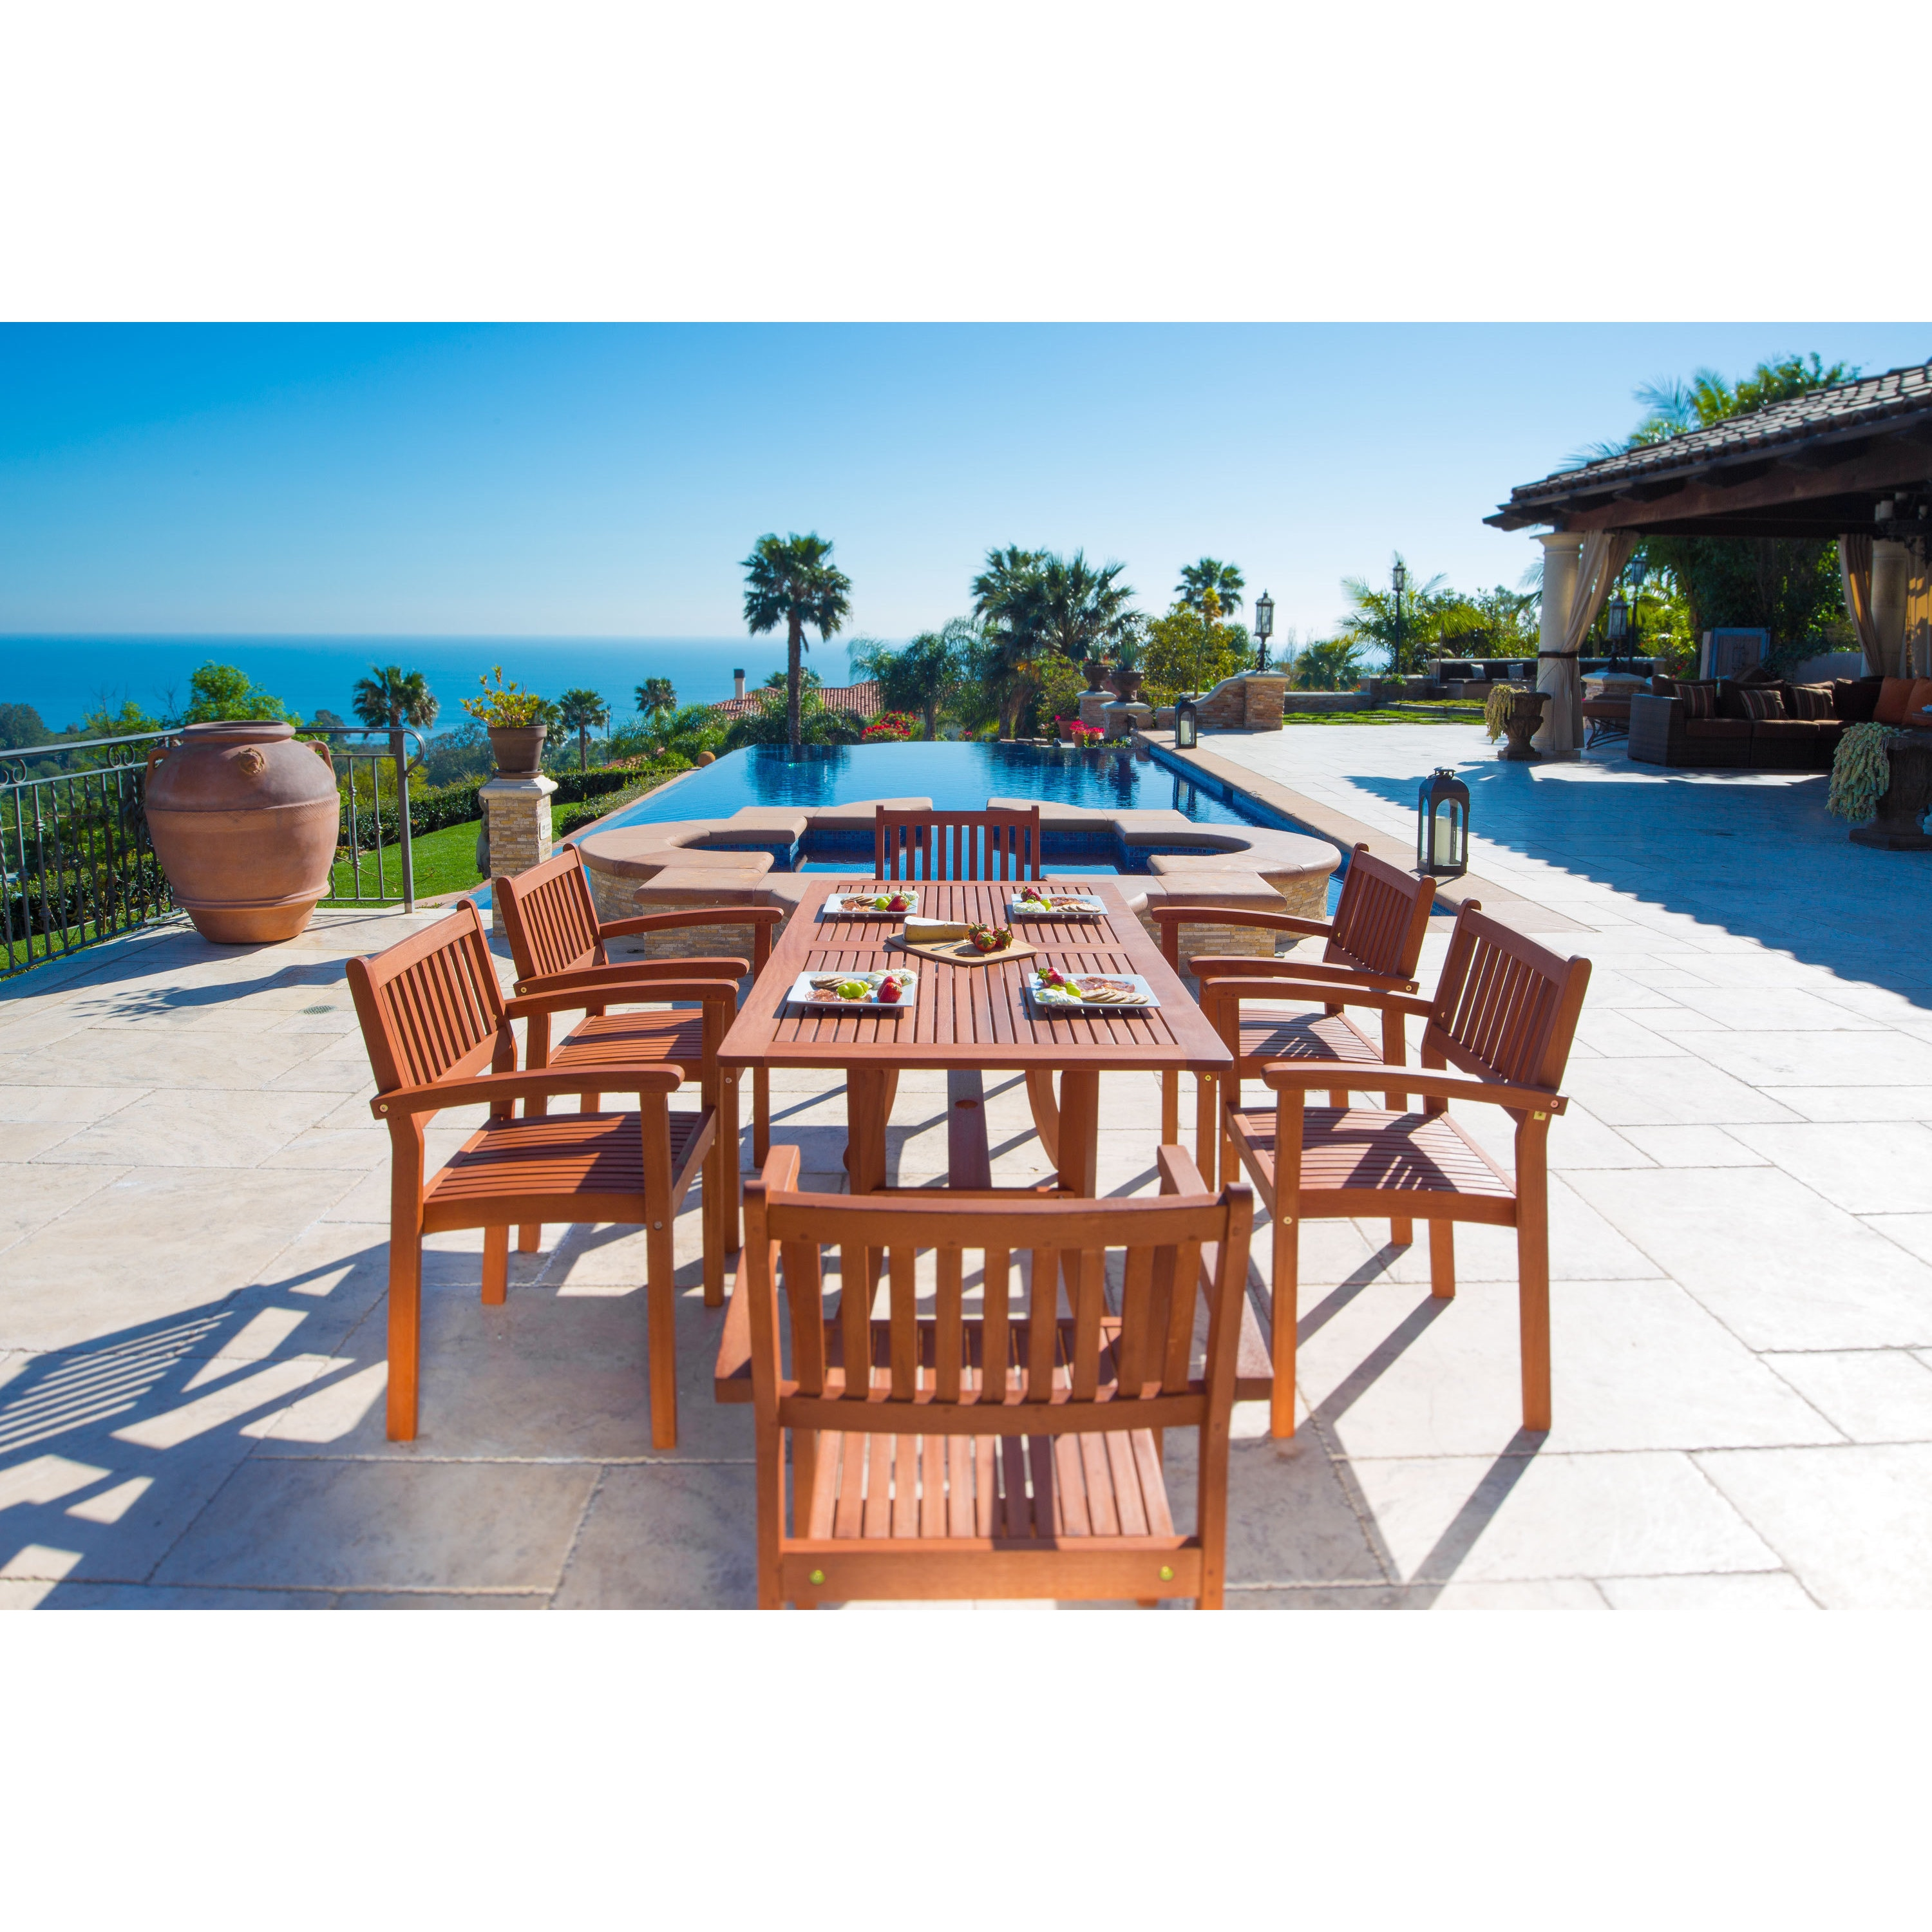 7 piece wood outdoor dining set with stacking chairs free shipping 7 piece wood outdoor dining set with stacking chairs free shipping today overstock 17243507 dzzzfo